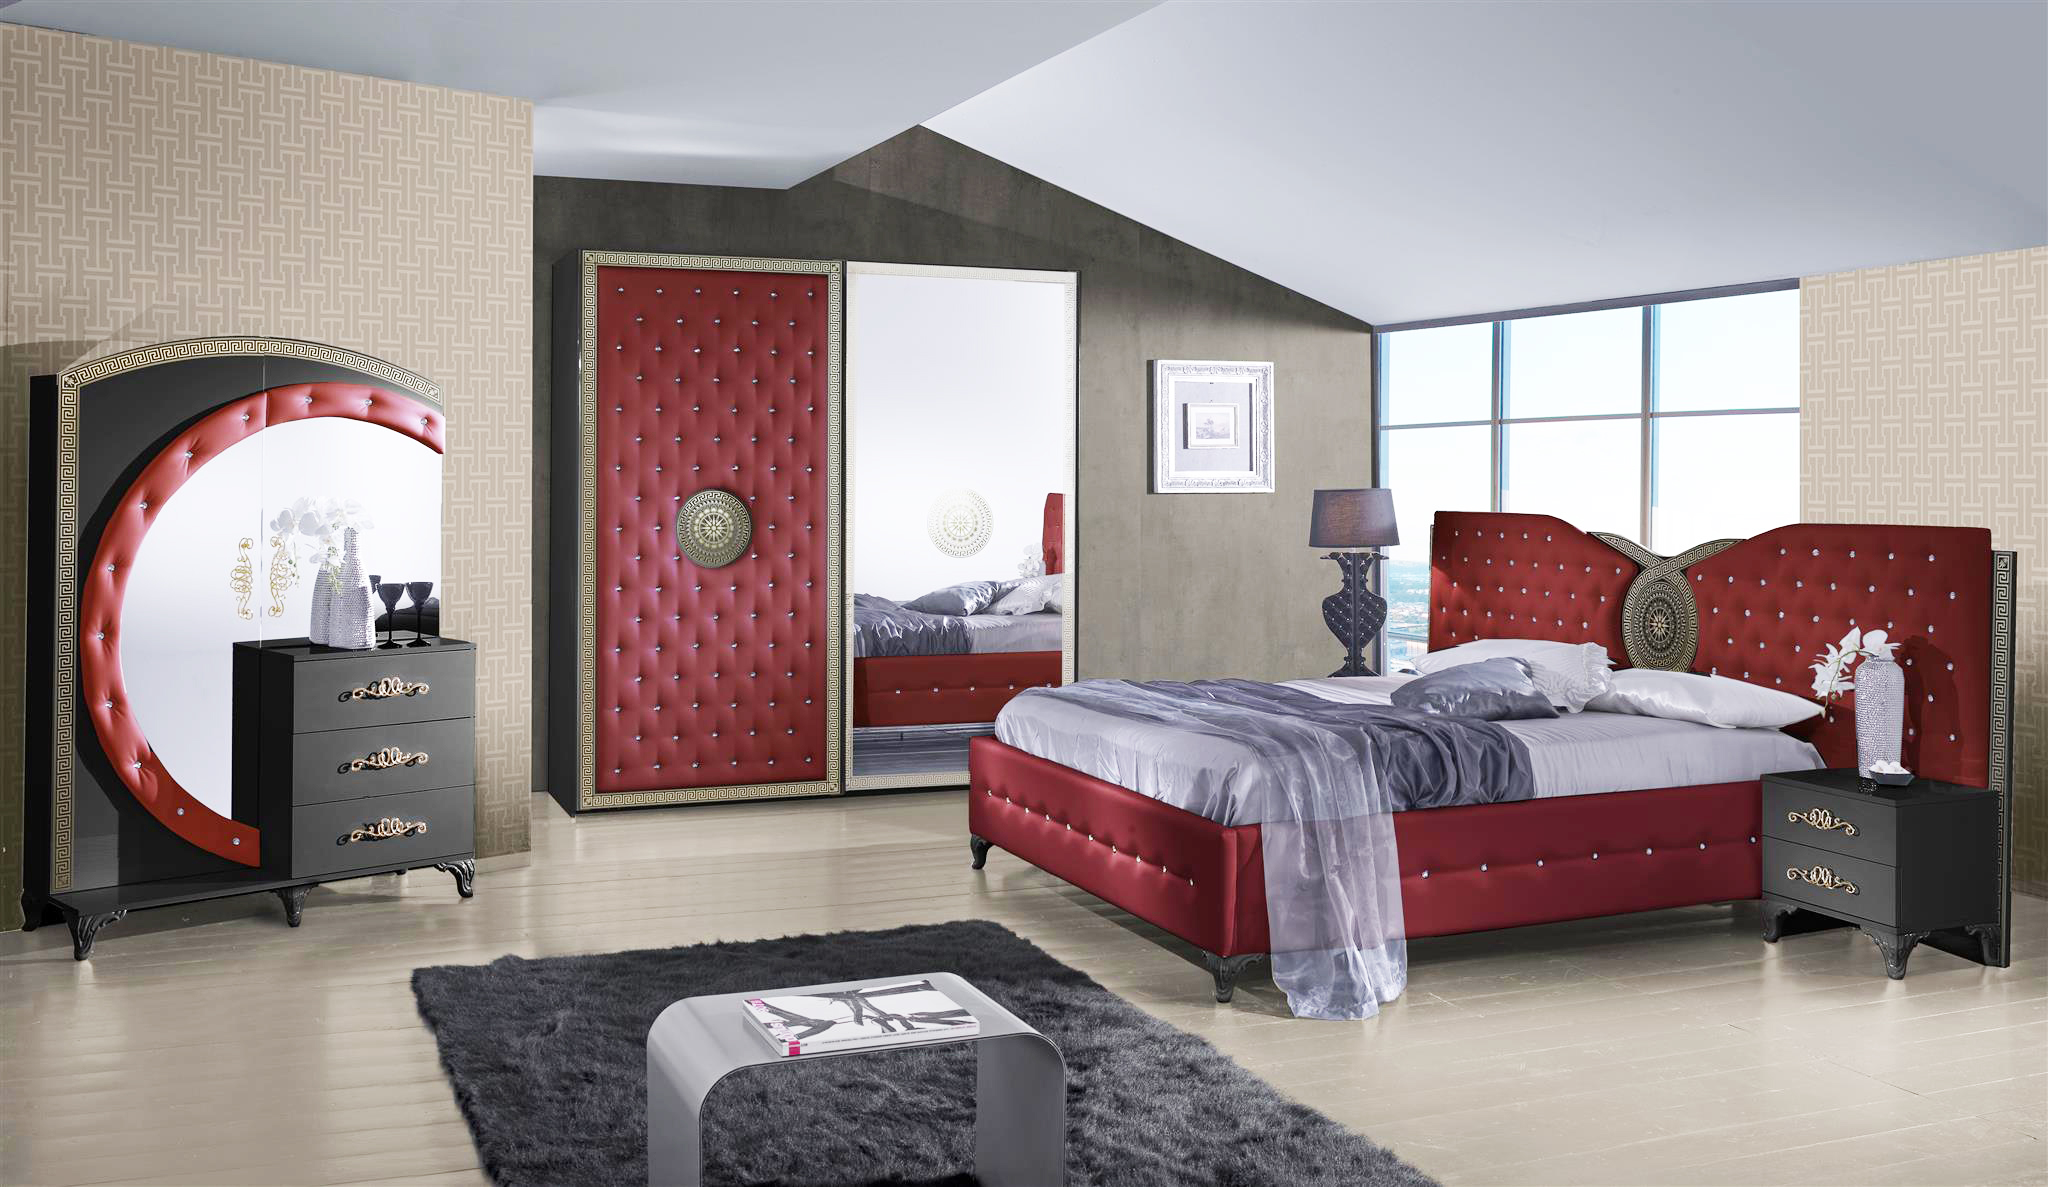 bett anatalia in rot schwarz luxus design 180x200 cm mit. Black Bedroom Furniture Sets. Home Design Ideas